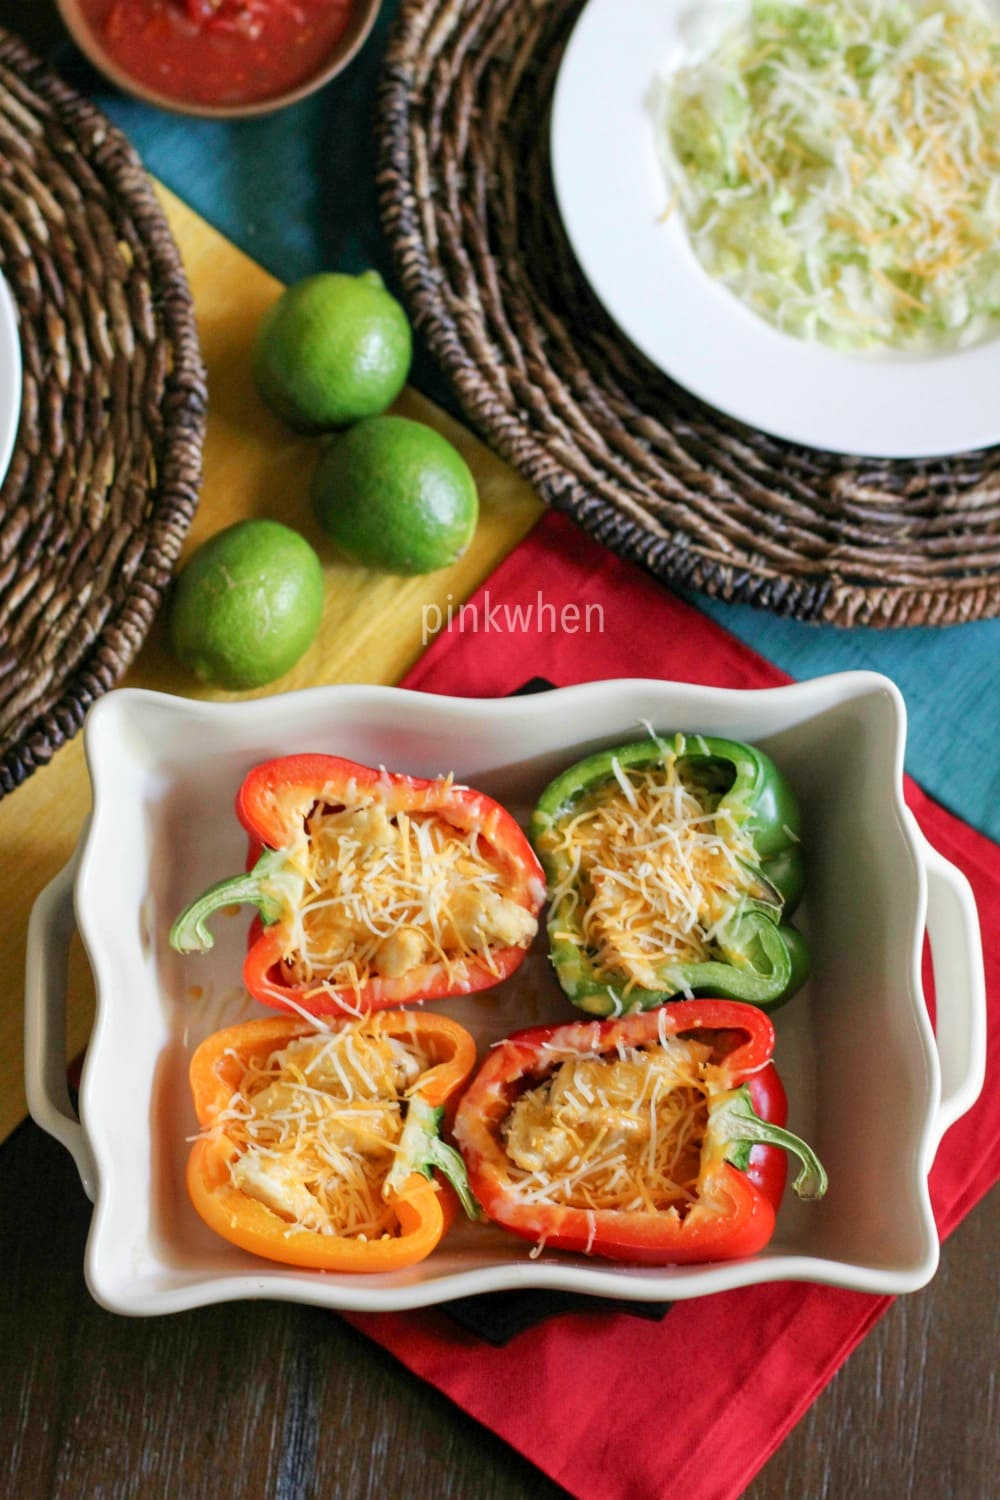 Healthy Chicken Fajita Stuffed Bell Pepper Recipe made with flavored quinoa, chicken, and more!